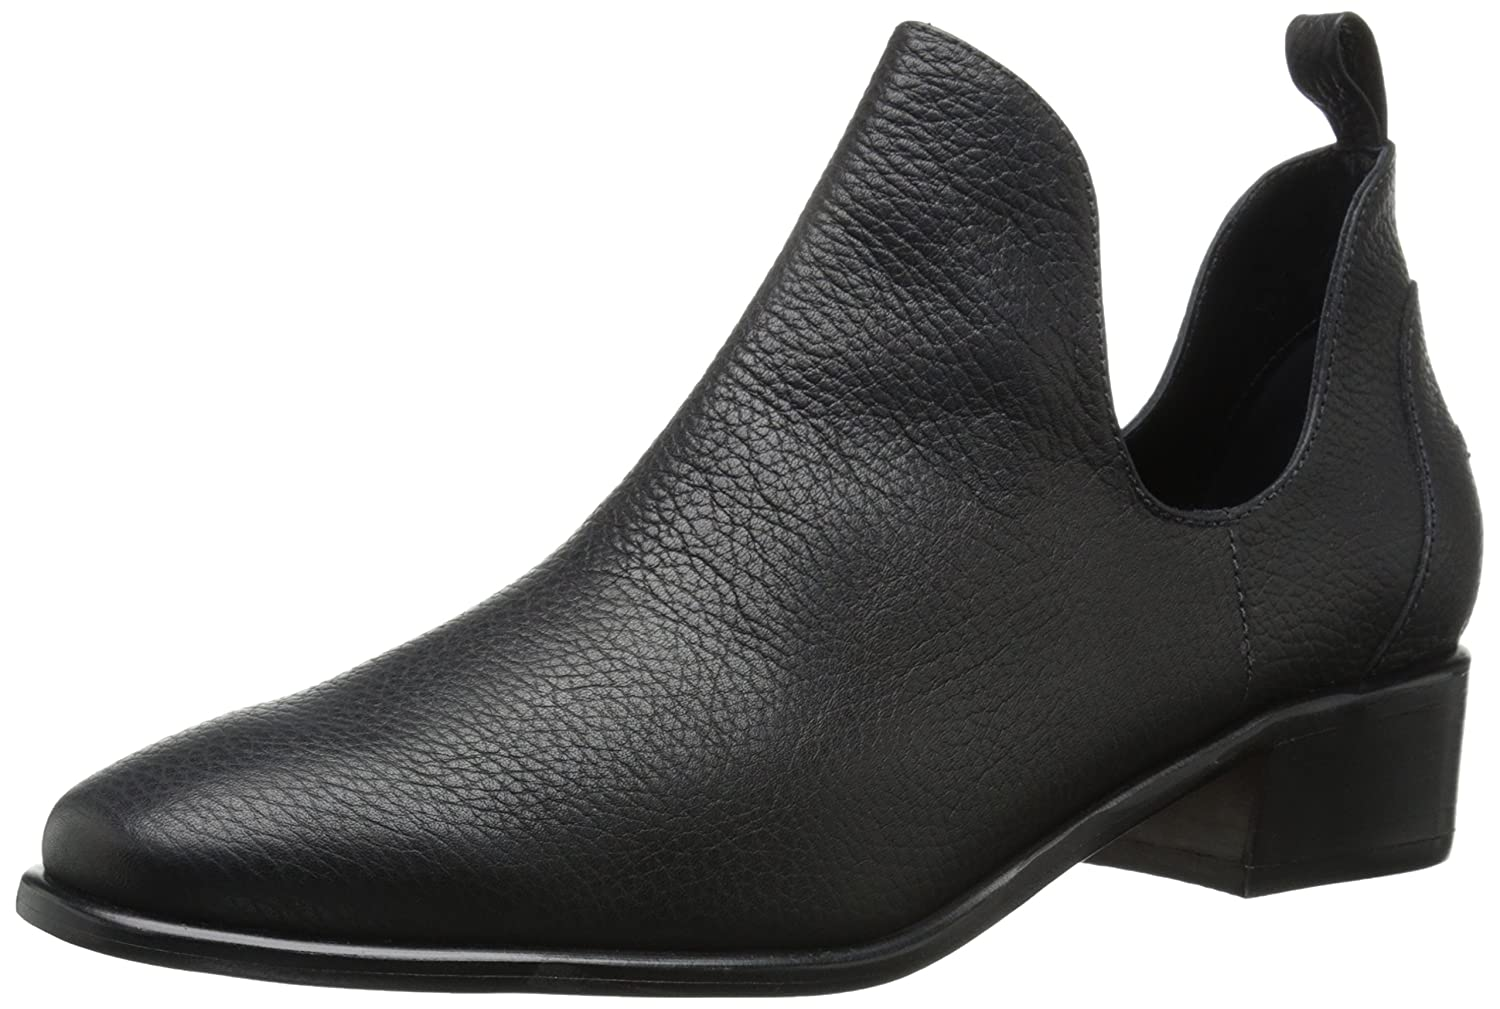 Rachel Comey Women's Mara Boot B0196HF1WE 7 B(M) US|Black Floater